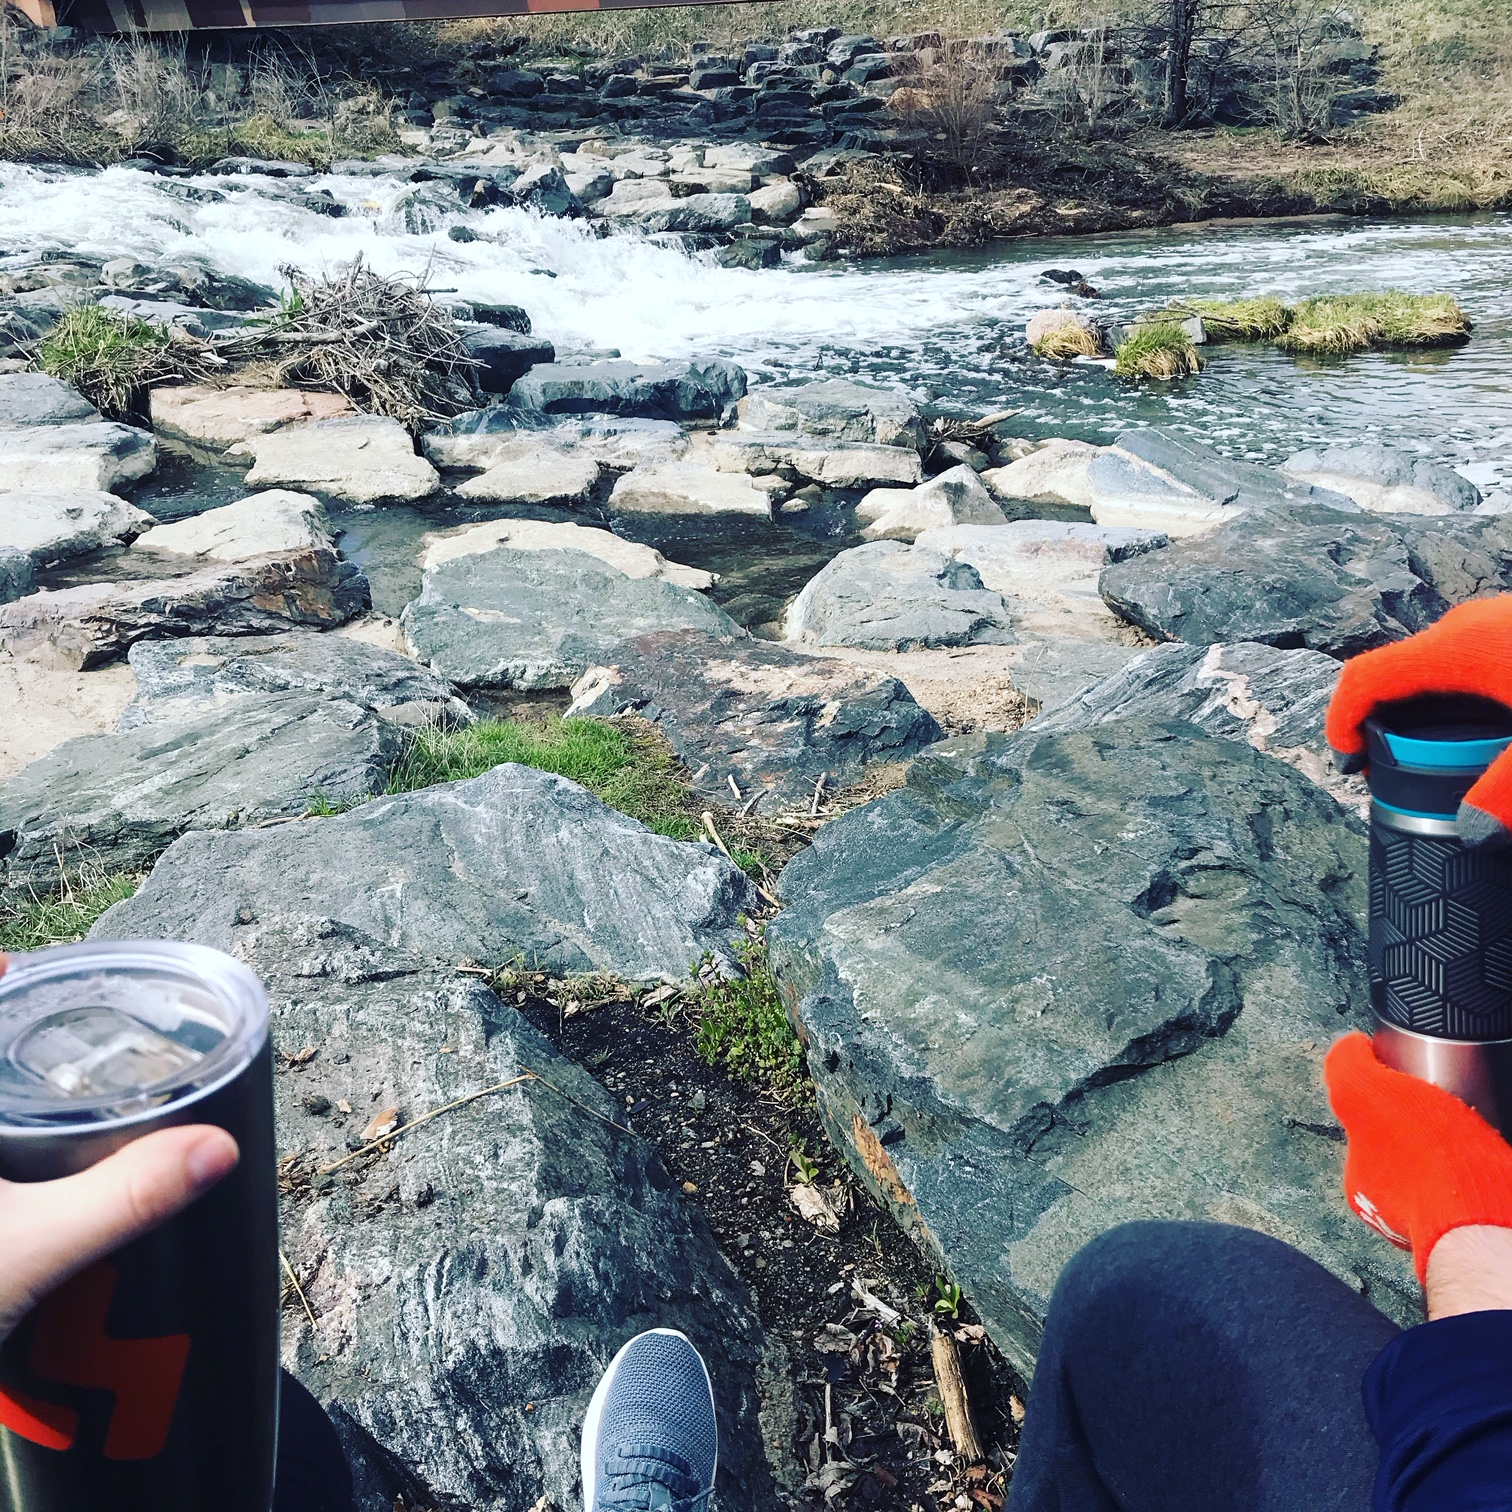 Coffee and Cherry Creek in Denver